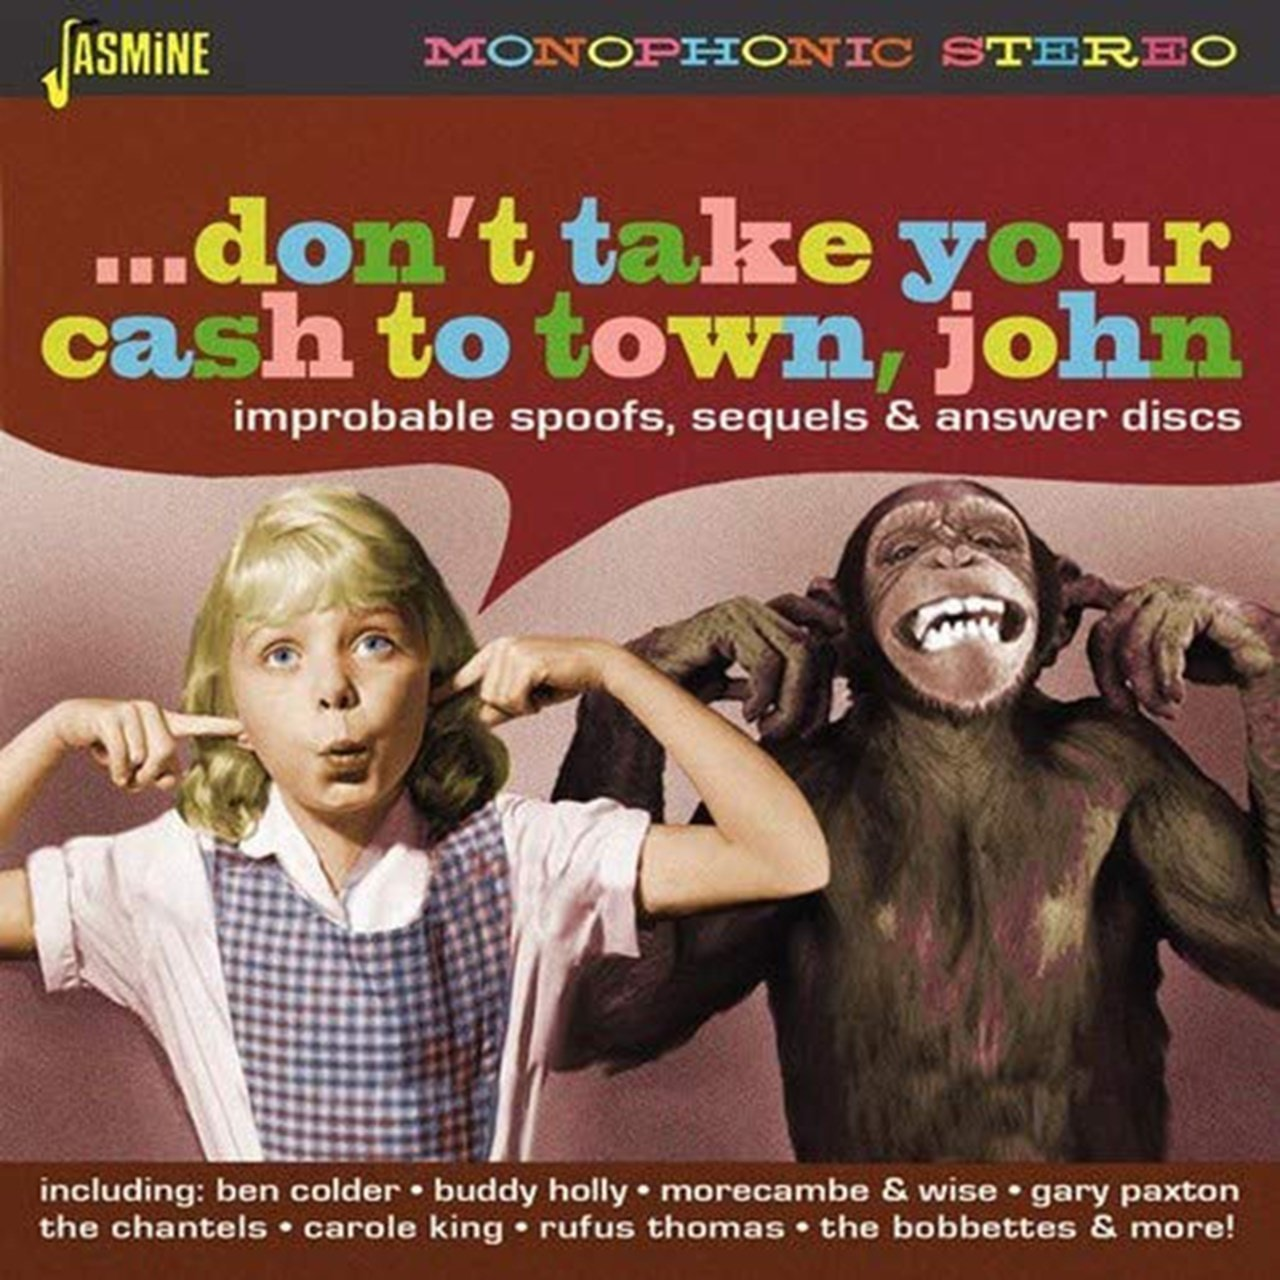 ...don't Take Your Cash to Town, John: Improbable Spoofs, Sequels & Answer Discs - 1